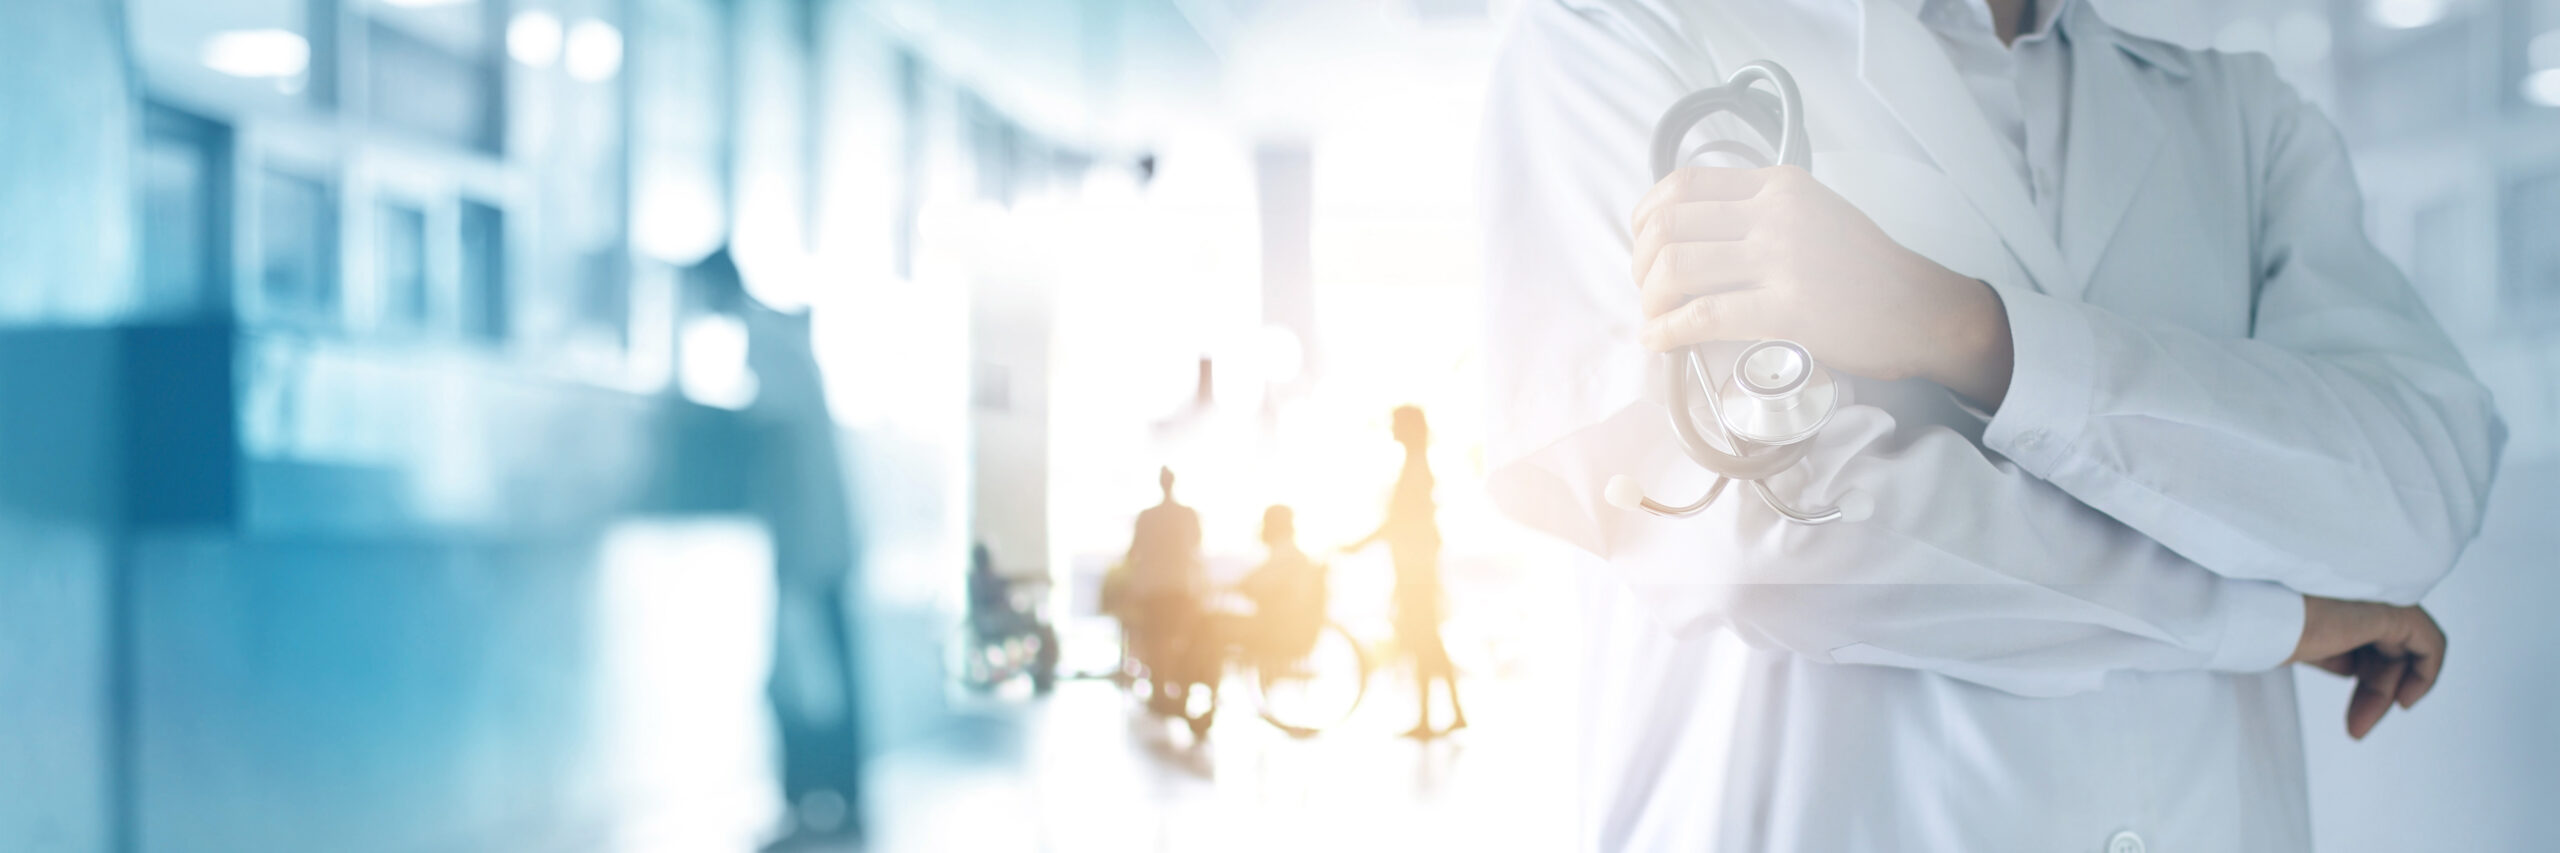 How to Finance Sudden Illnesses That Your Medical Insurance Does Not Cover.